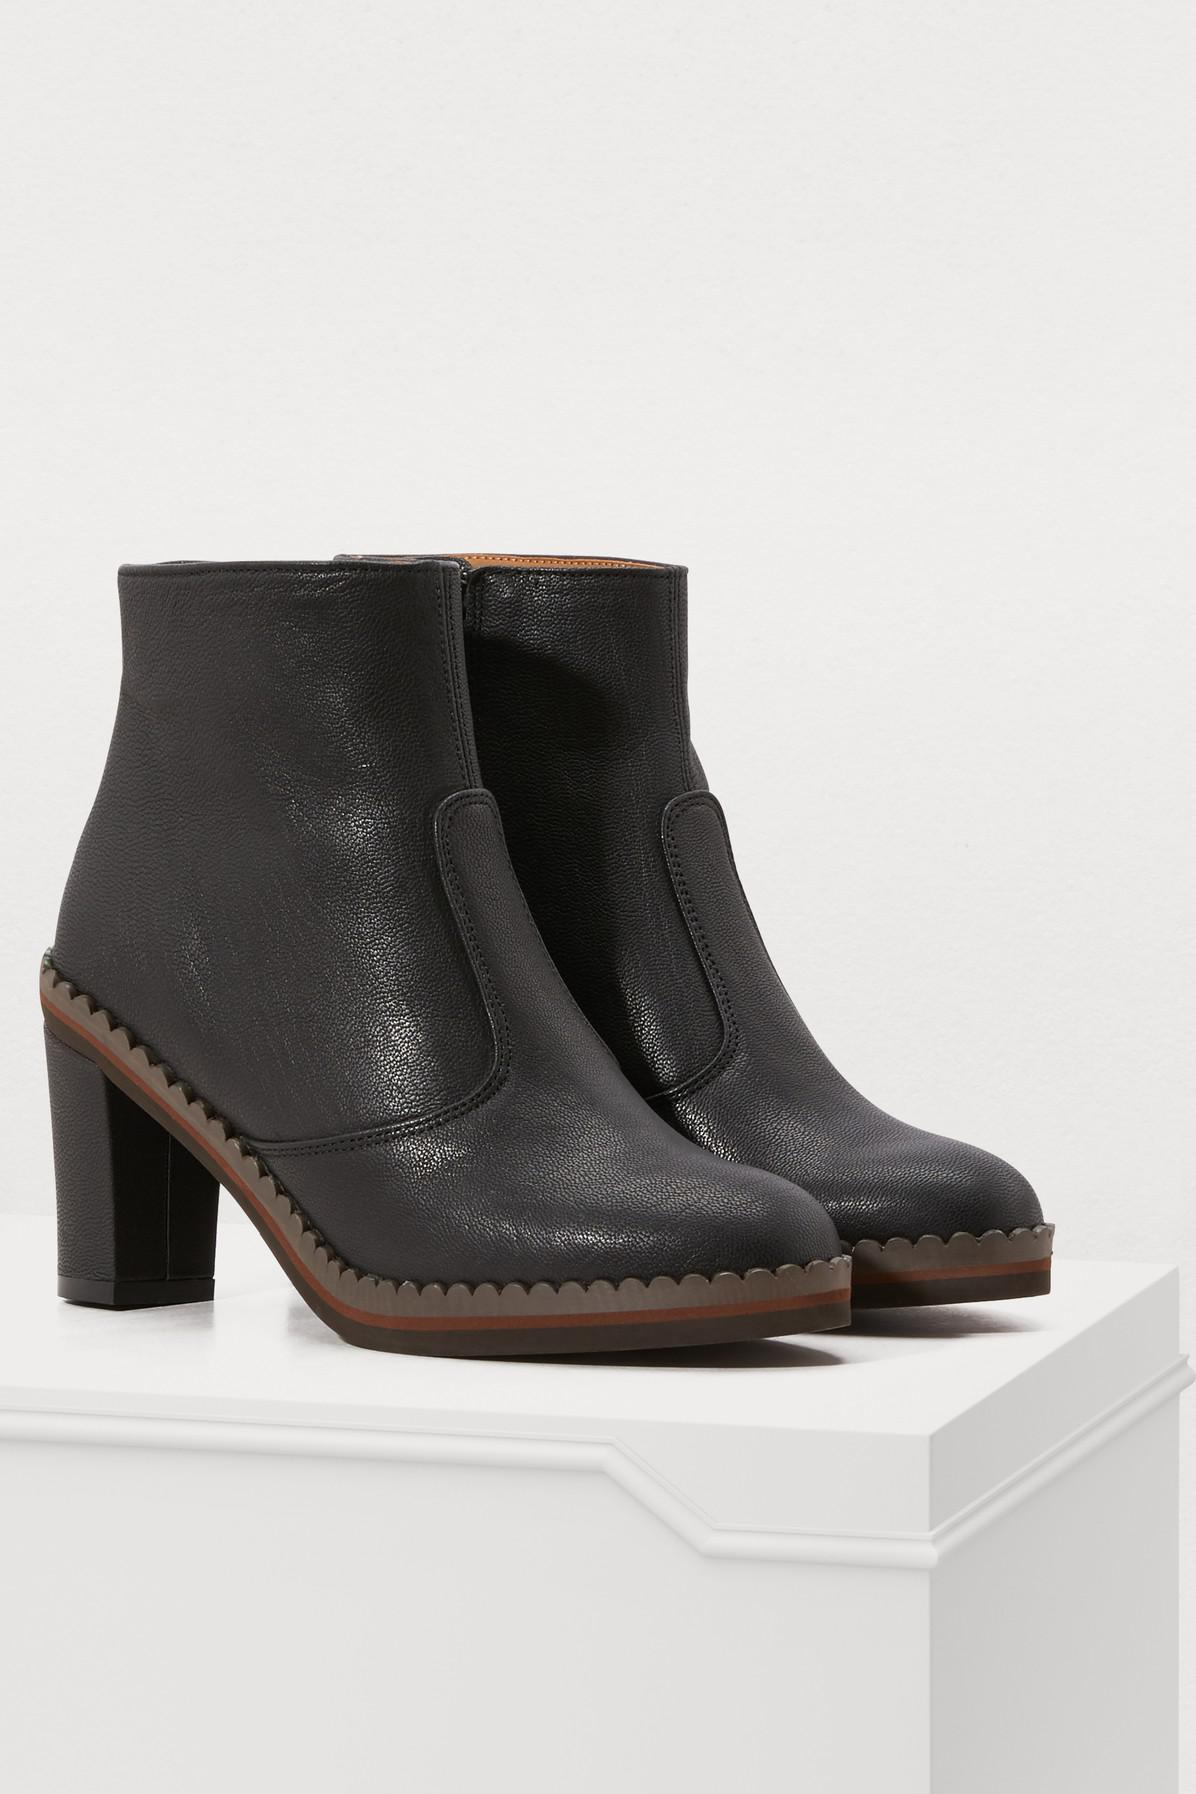 See By Chloé Stasya Ankle Boots in Nero (Black)